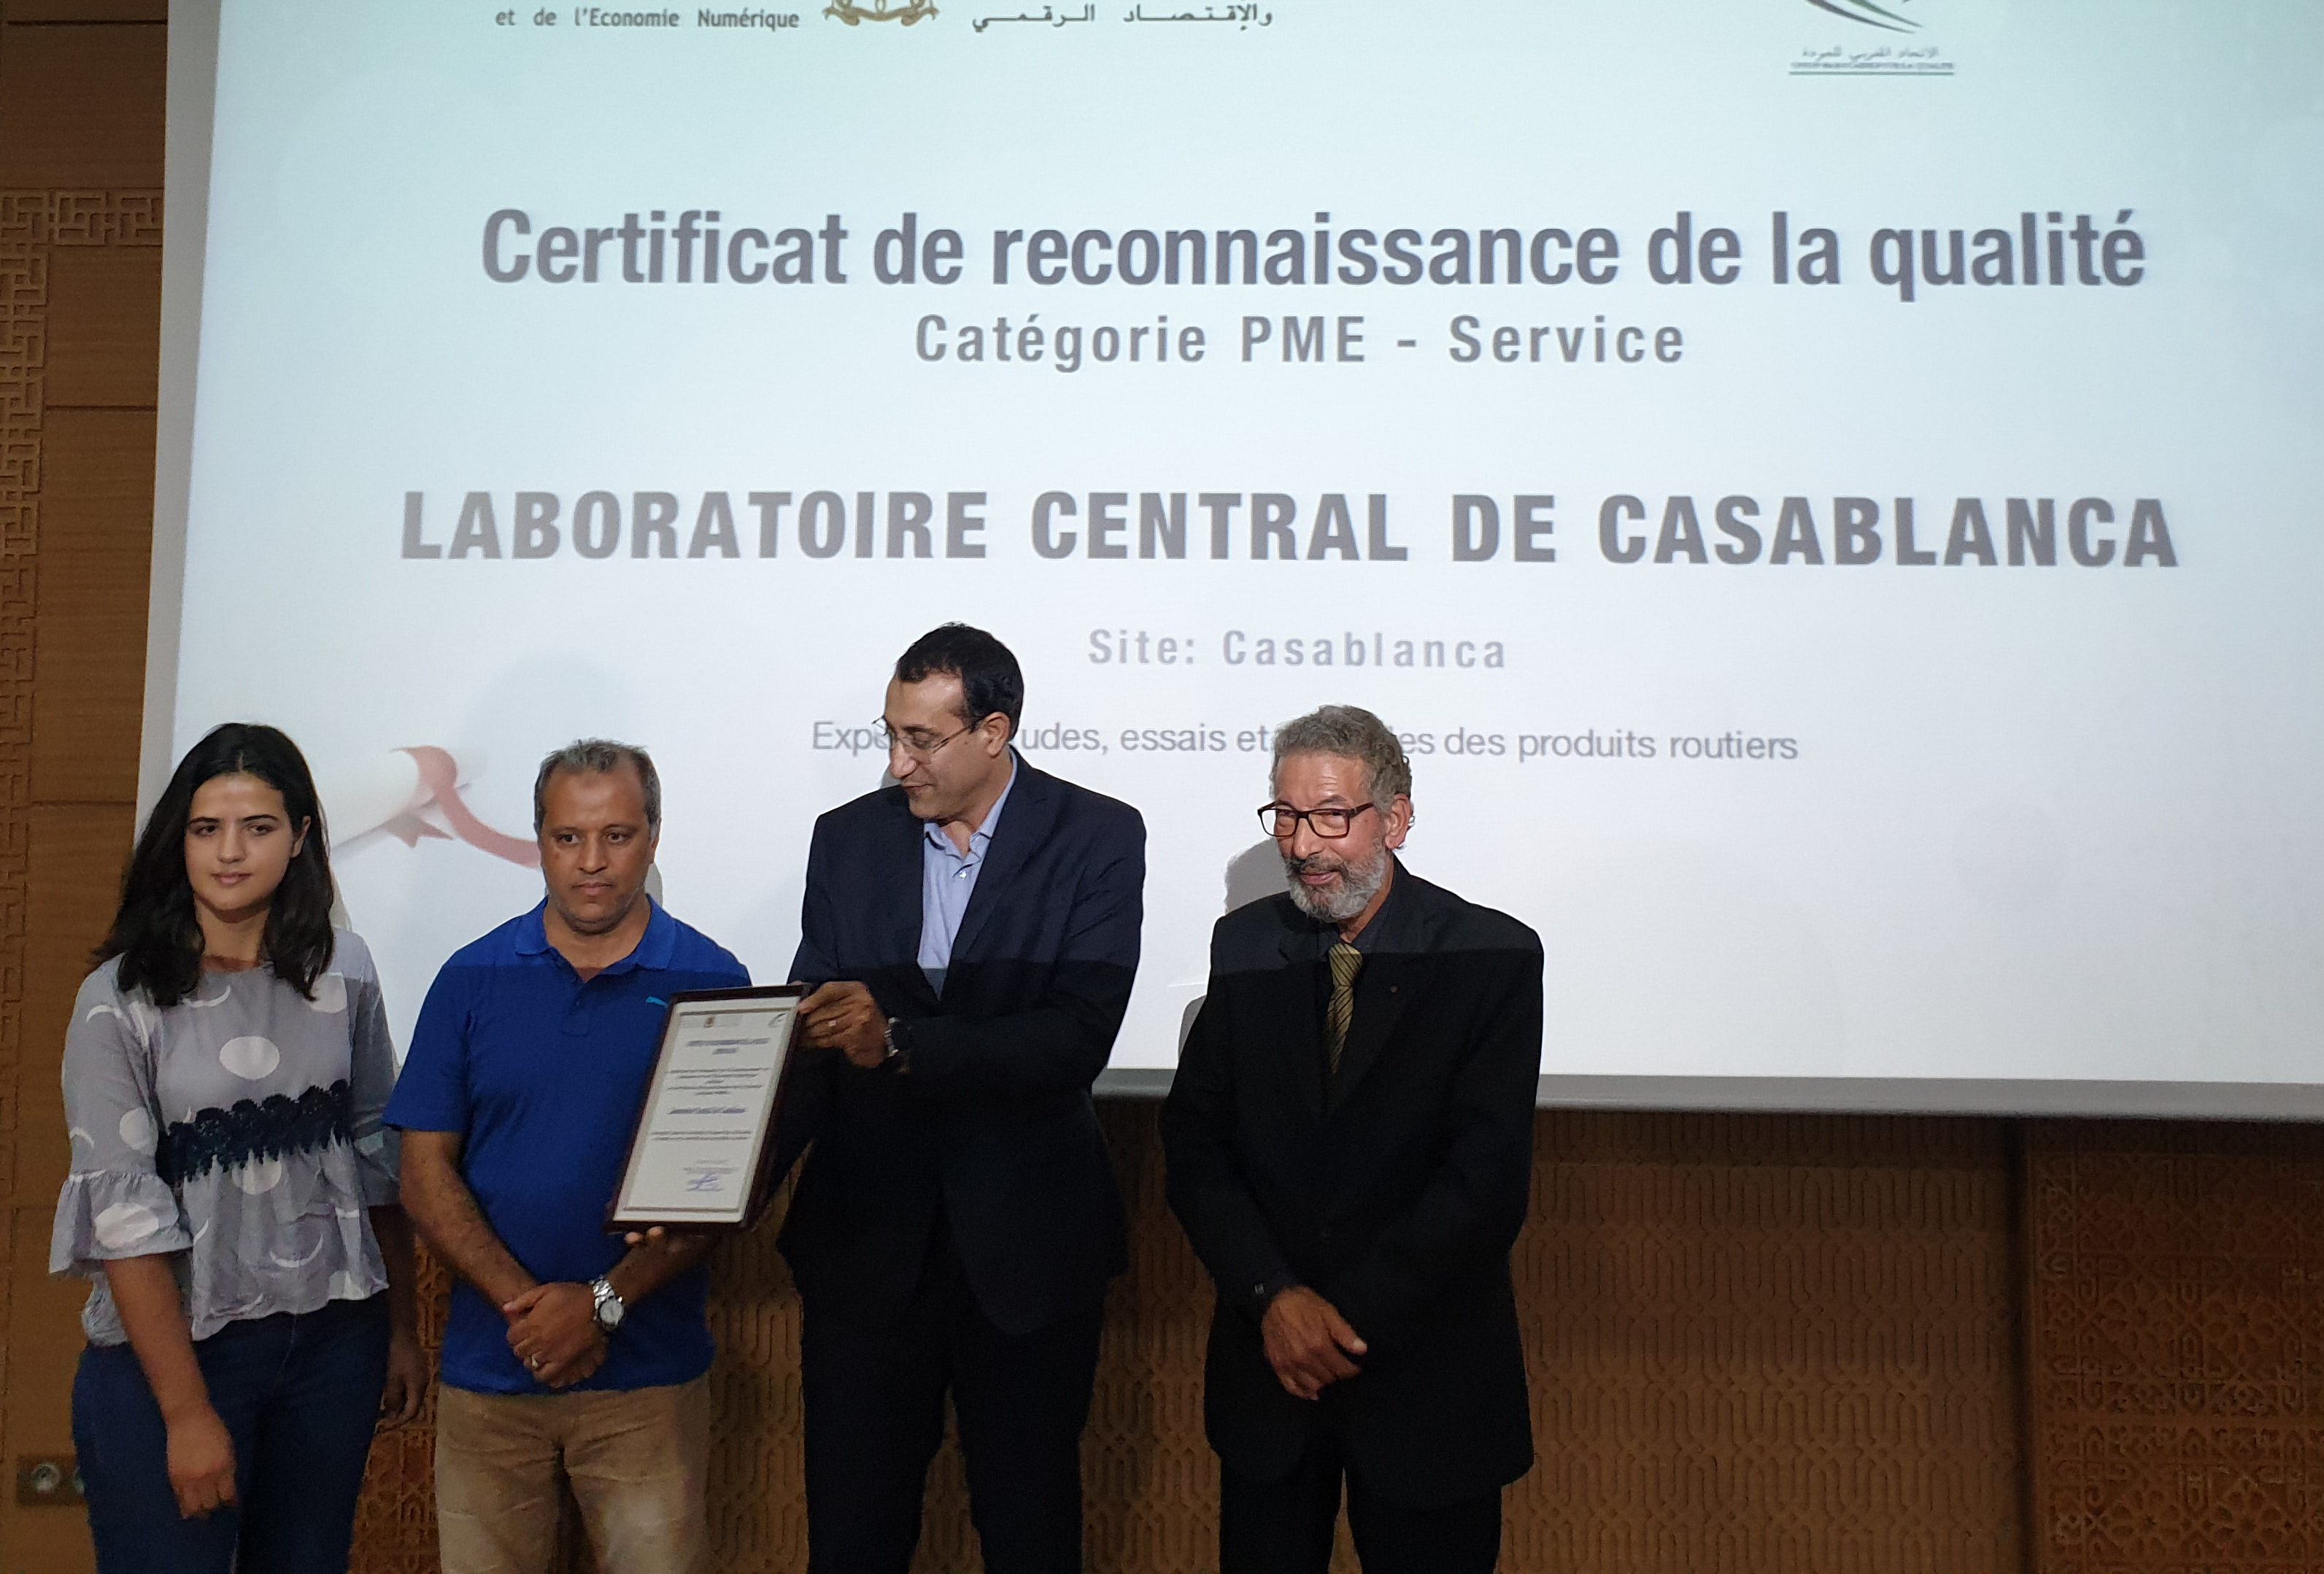 Laboratoire Central de Casablanca